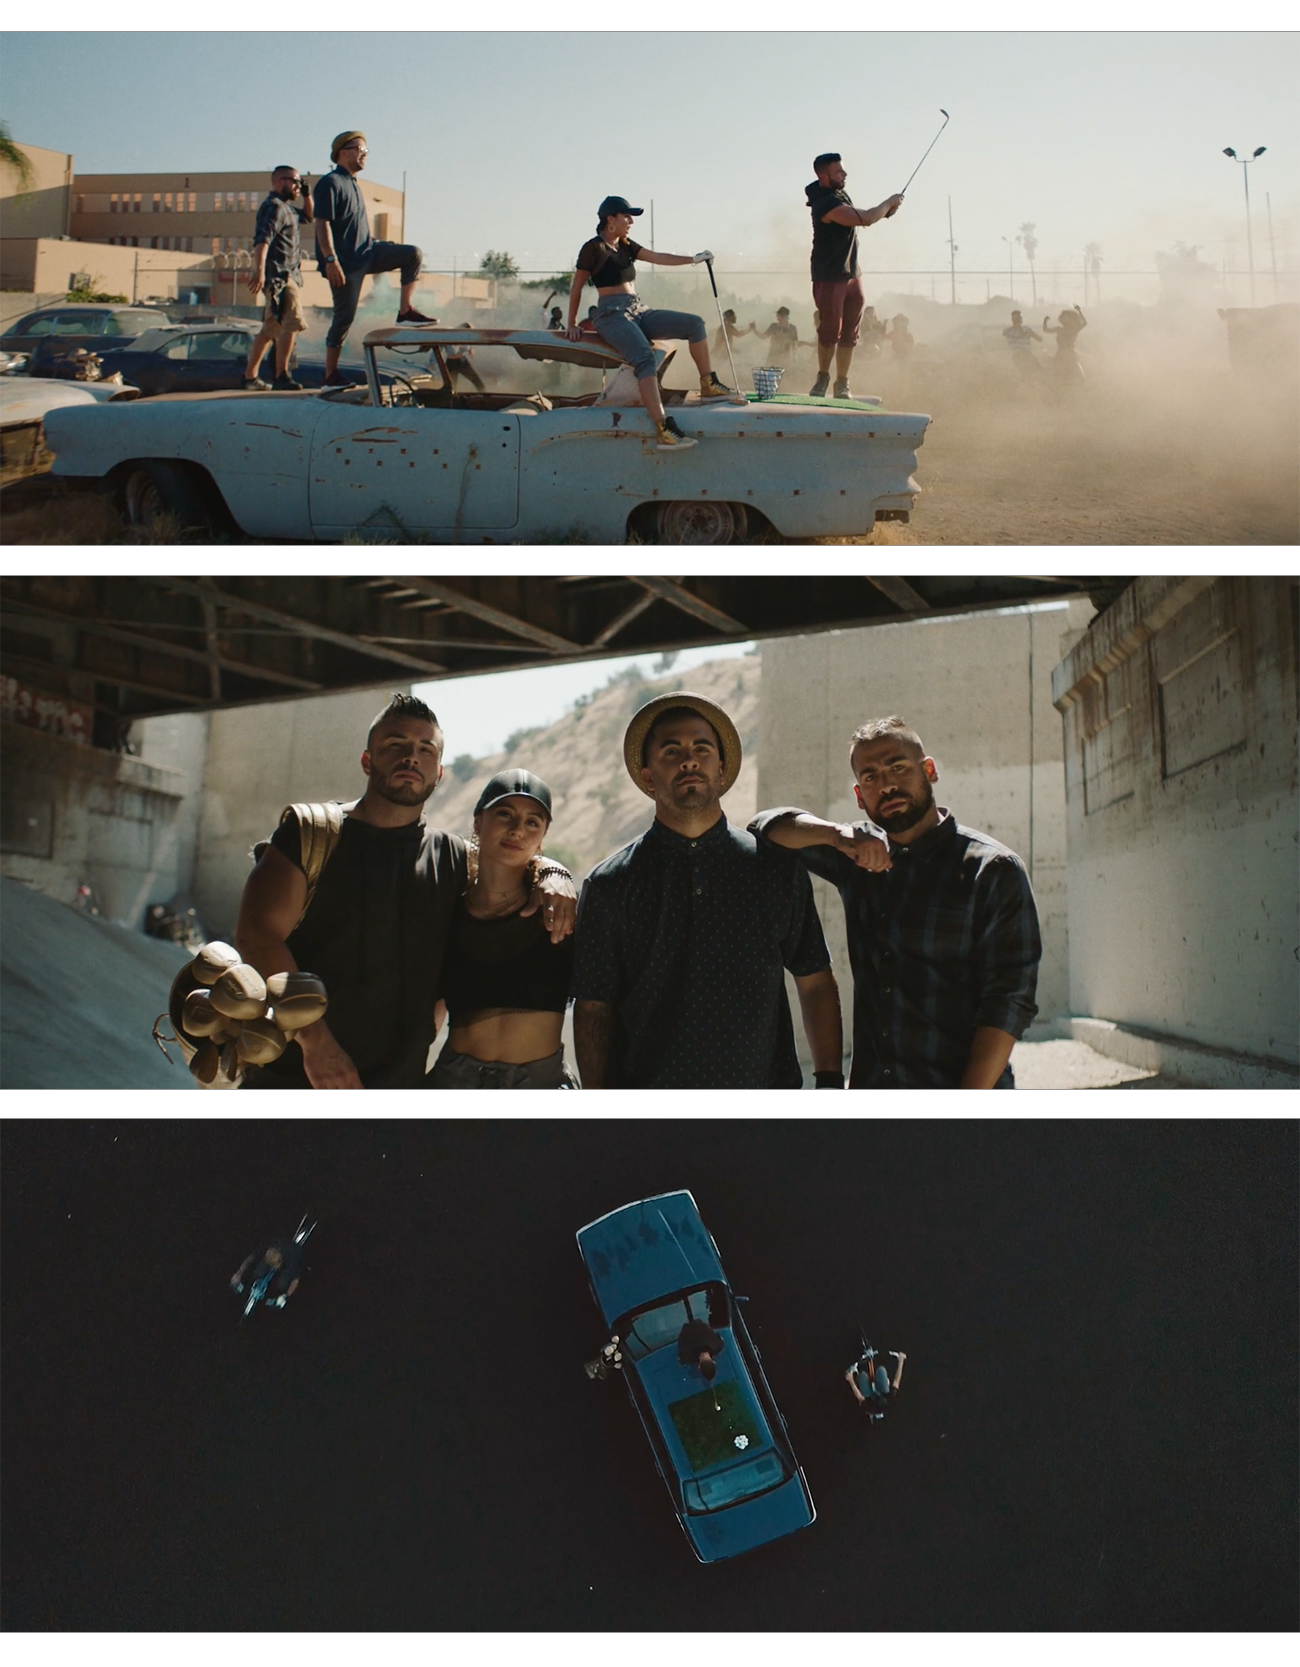 PGA X MITUDRIVING THROUGH THE HOOD - dIRECTOR : SEBASTIAN SDAIGUI